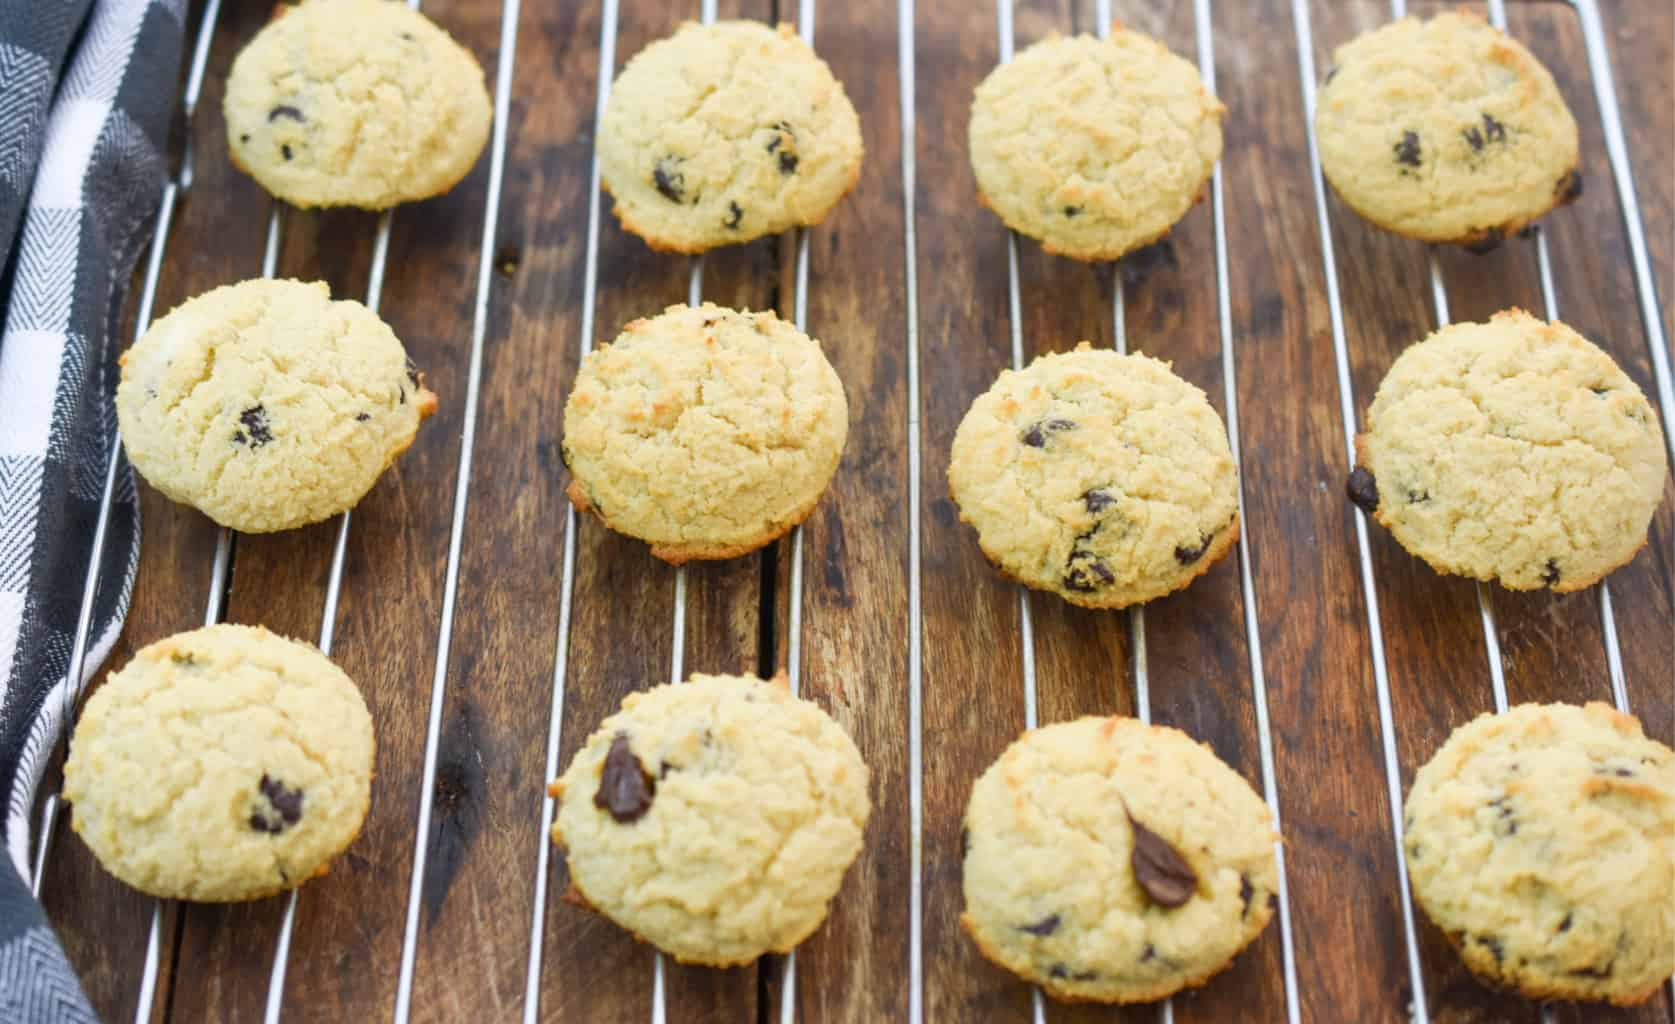 Soft baked keto cream cheese chocolate chip cookies on baking rack cooling